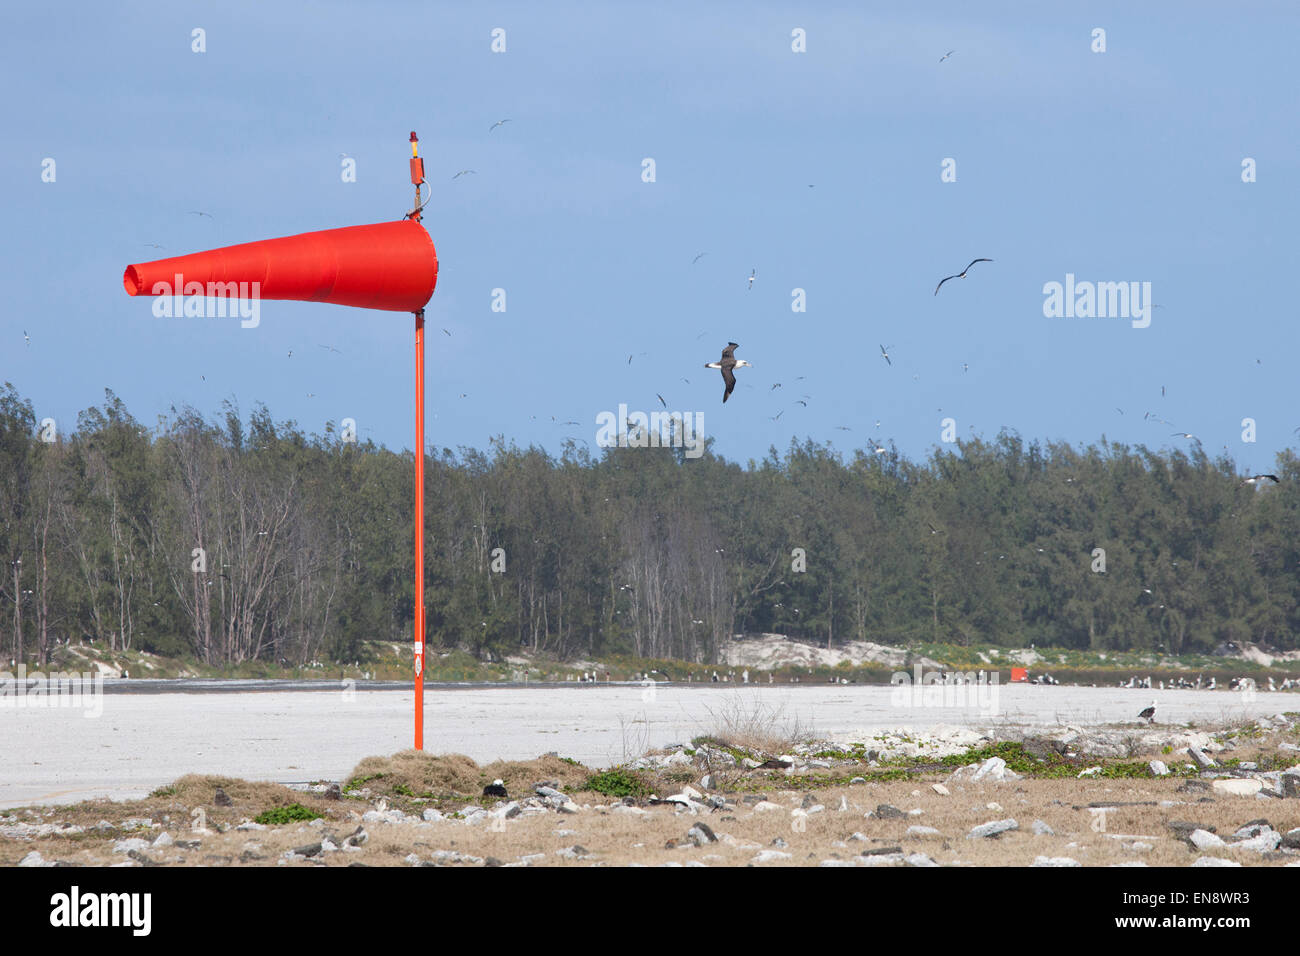 Laysan Albatrosses flying over an airport runway, Henderson Field - Stock Image